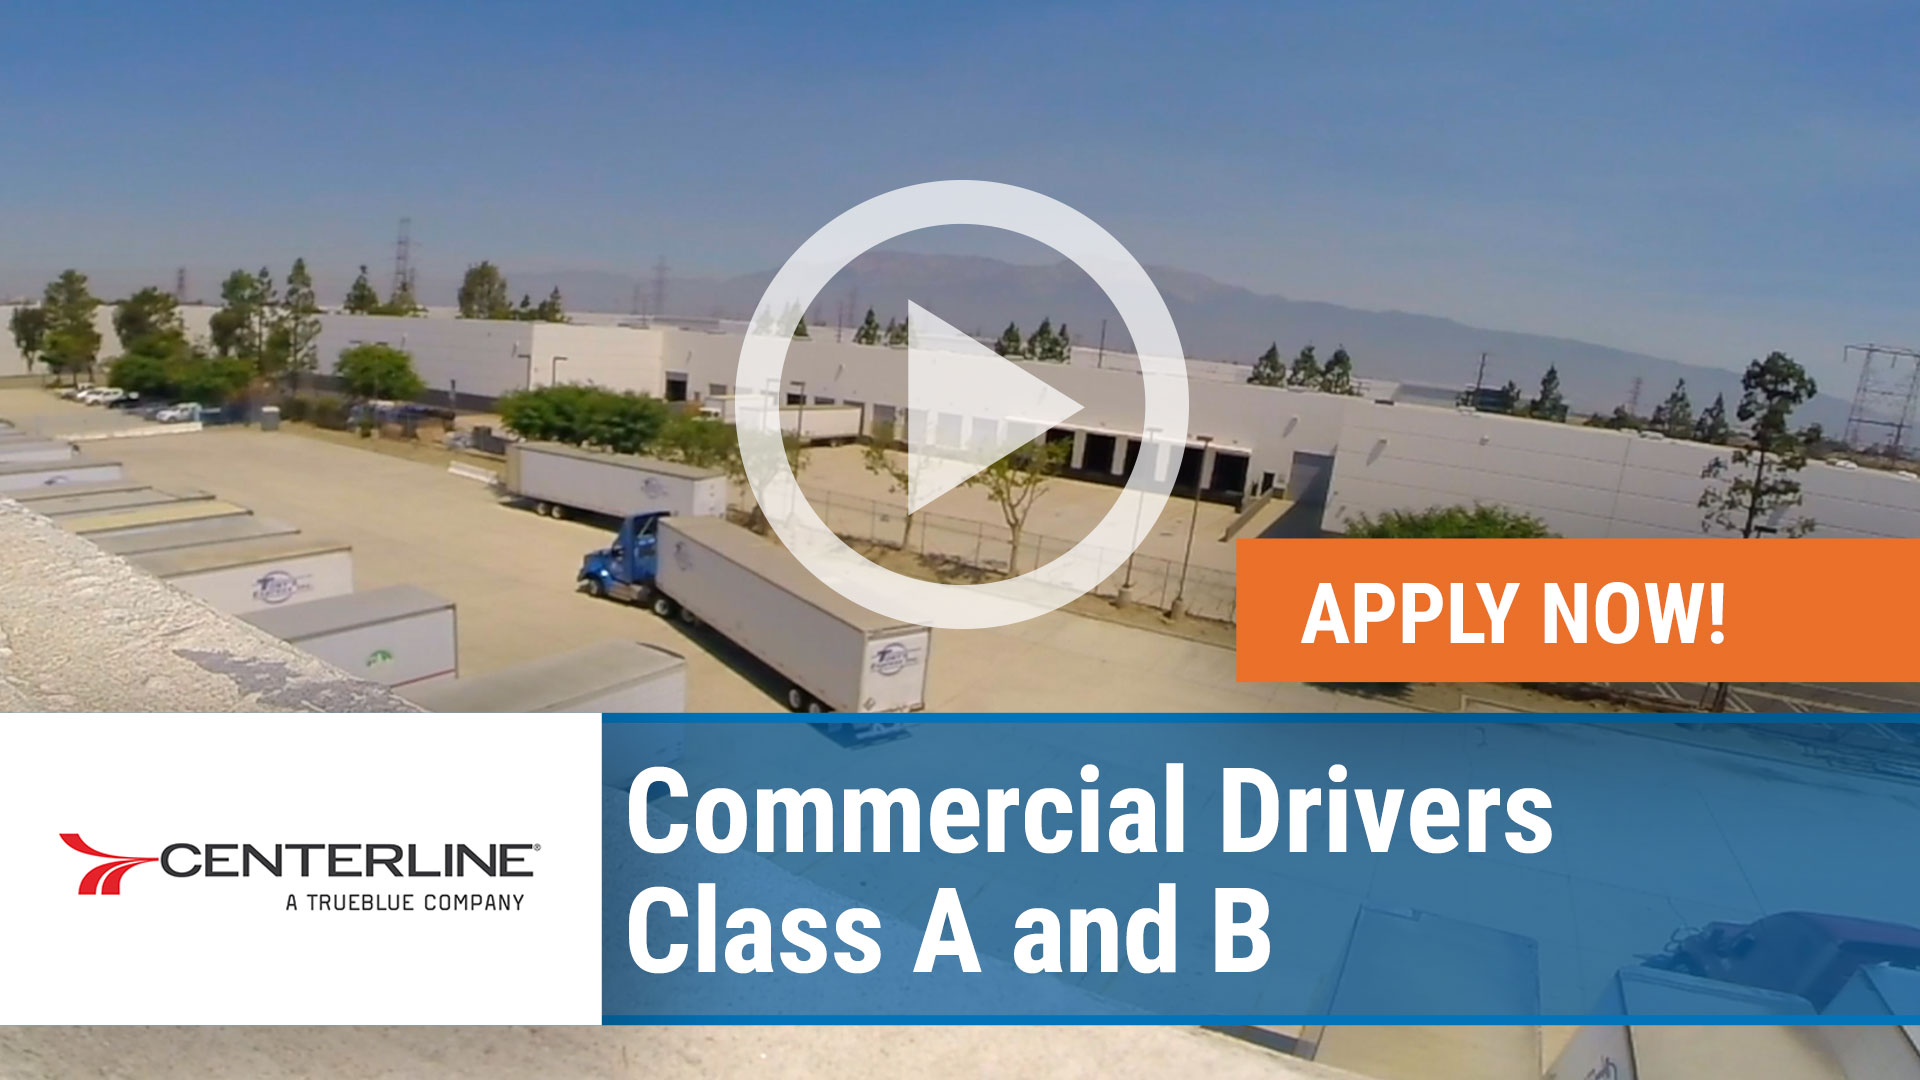 Watch our careers video for available job opening Commercial Drivers - Class A and B in Nationwide, USA